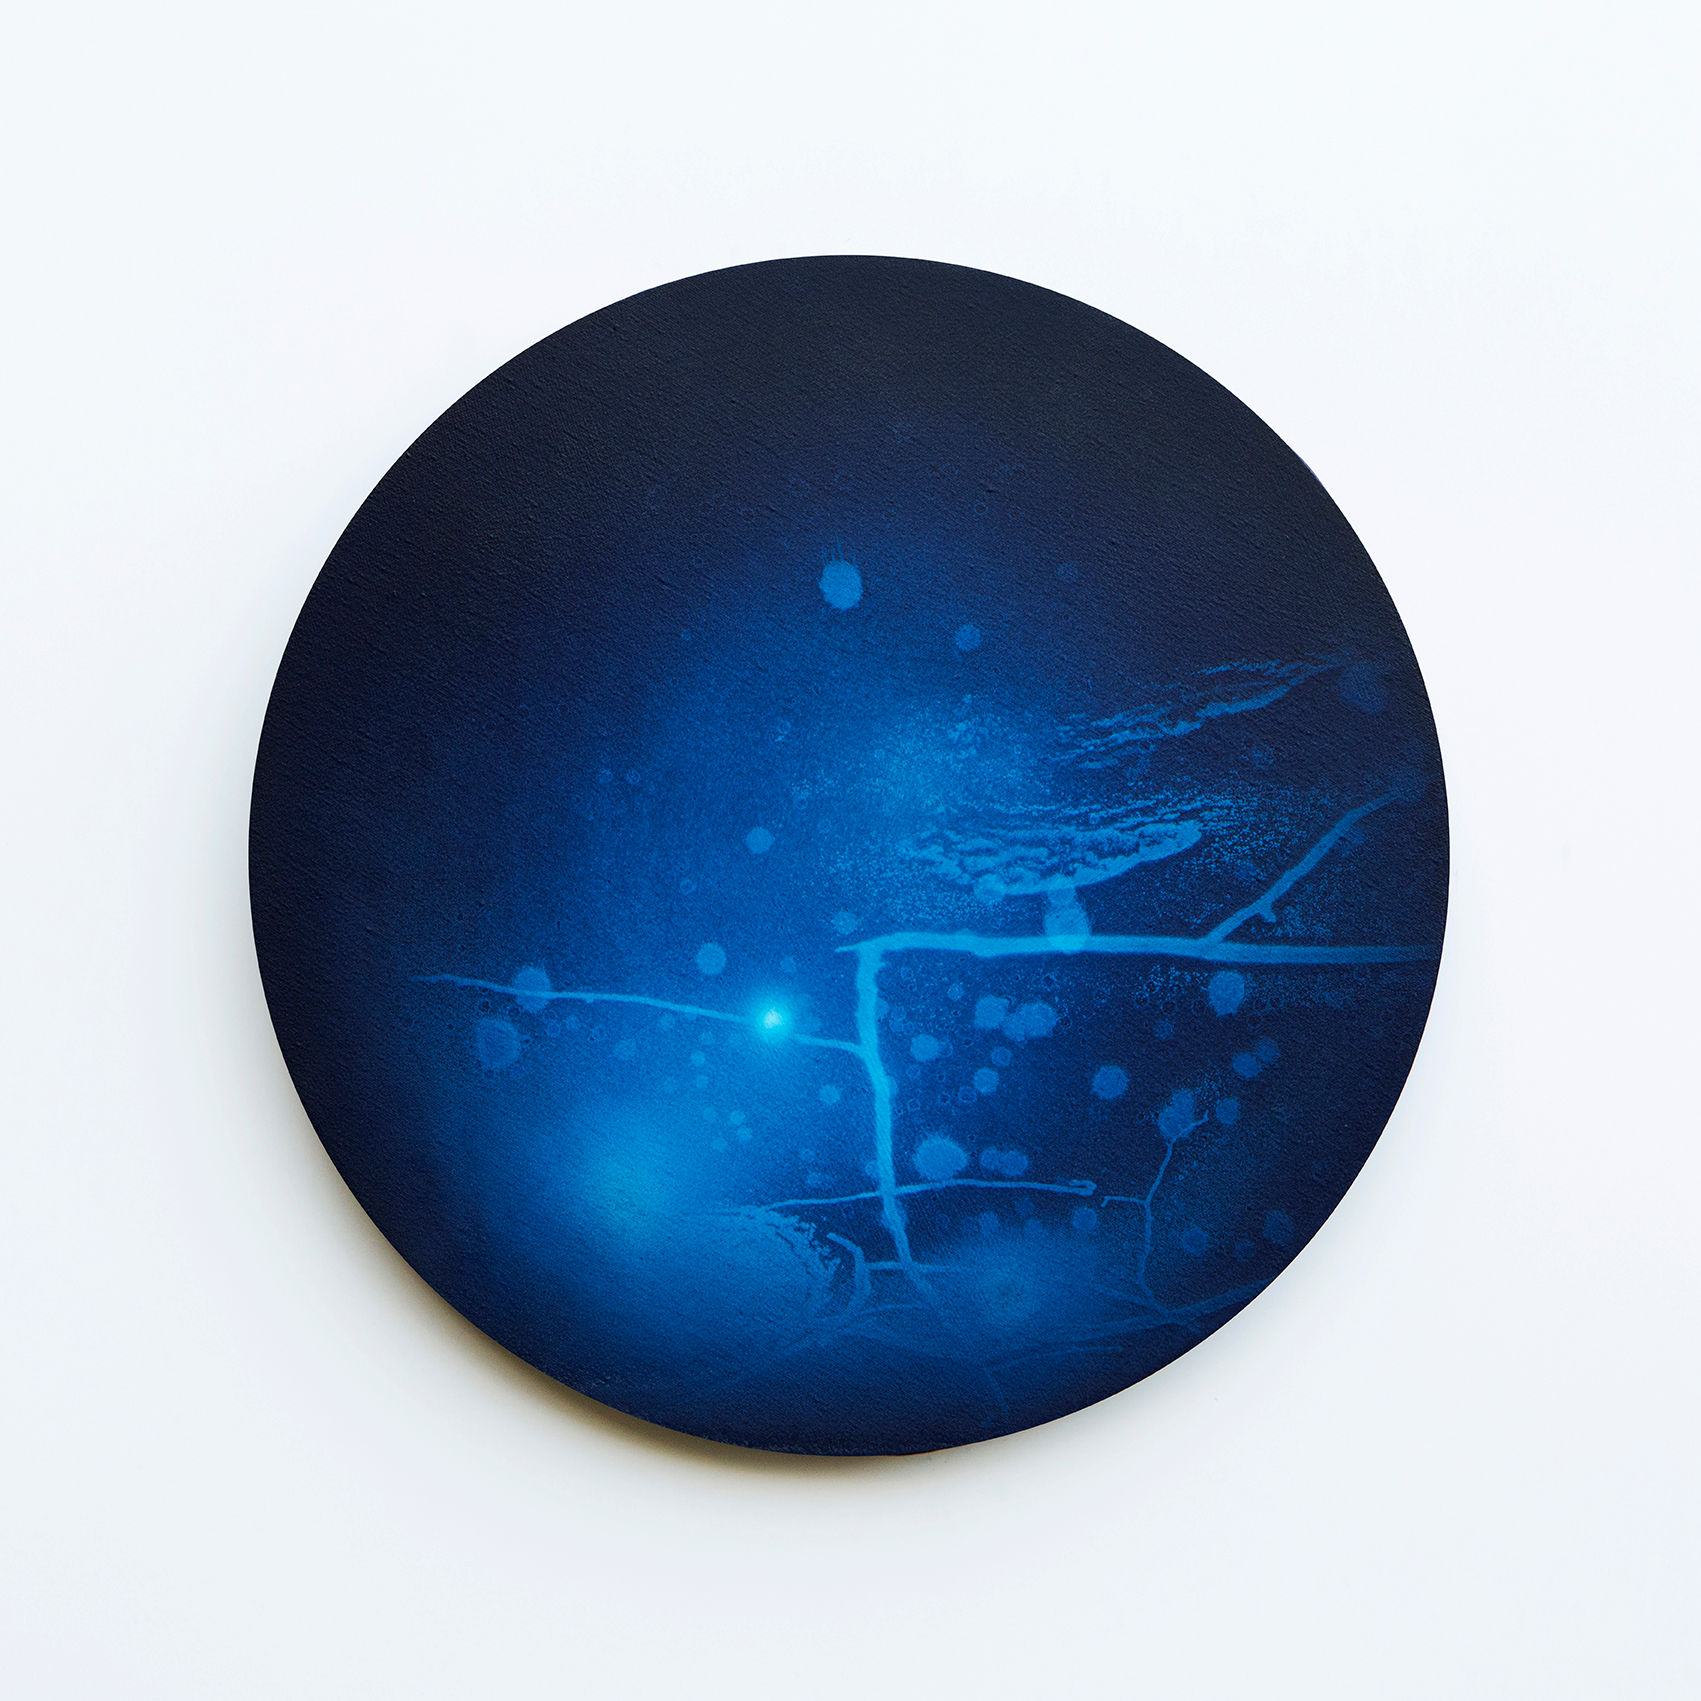 WATERSCAPE_내 안의 바깥 37, Diameter 40cm, Traditional pigment, water-print, water-drawing on canvas, 2018